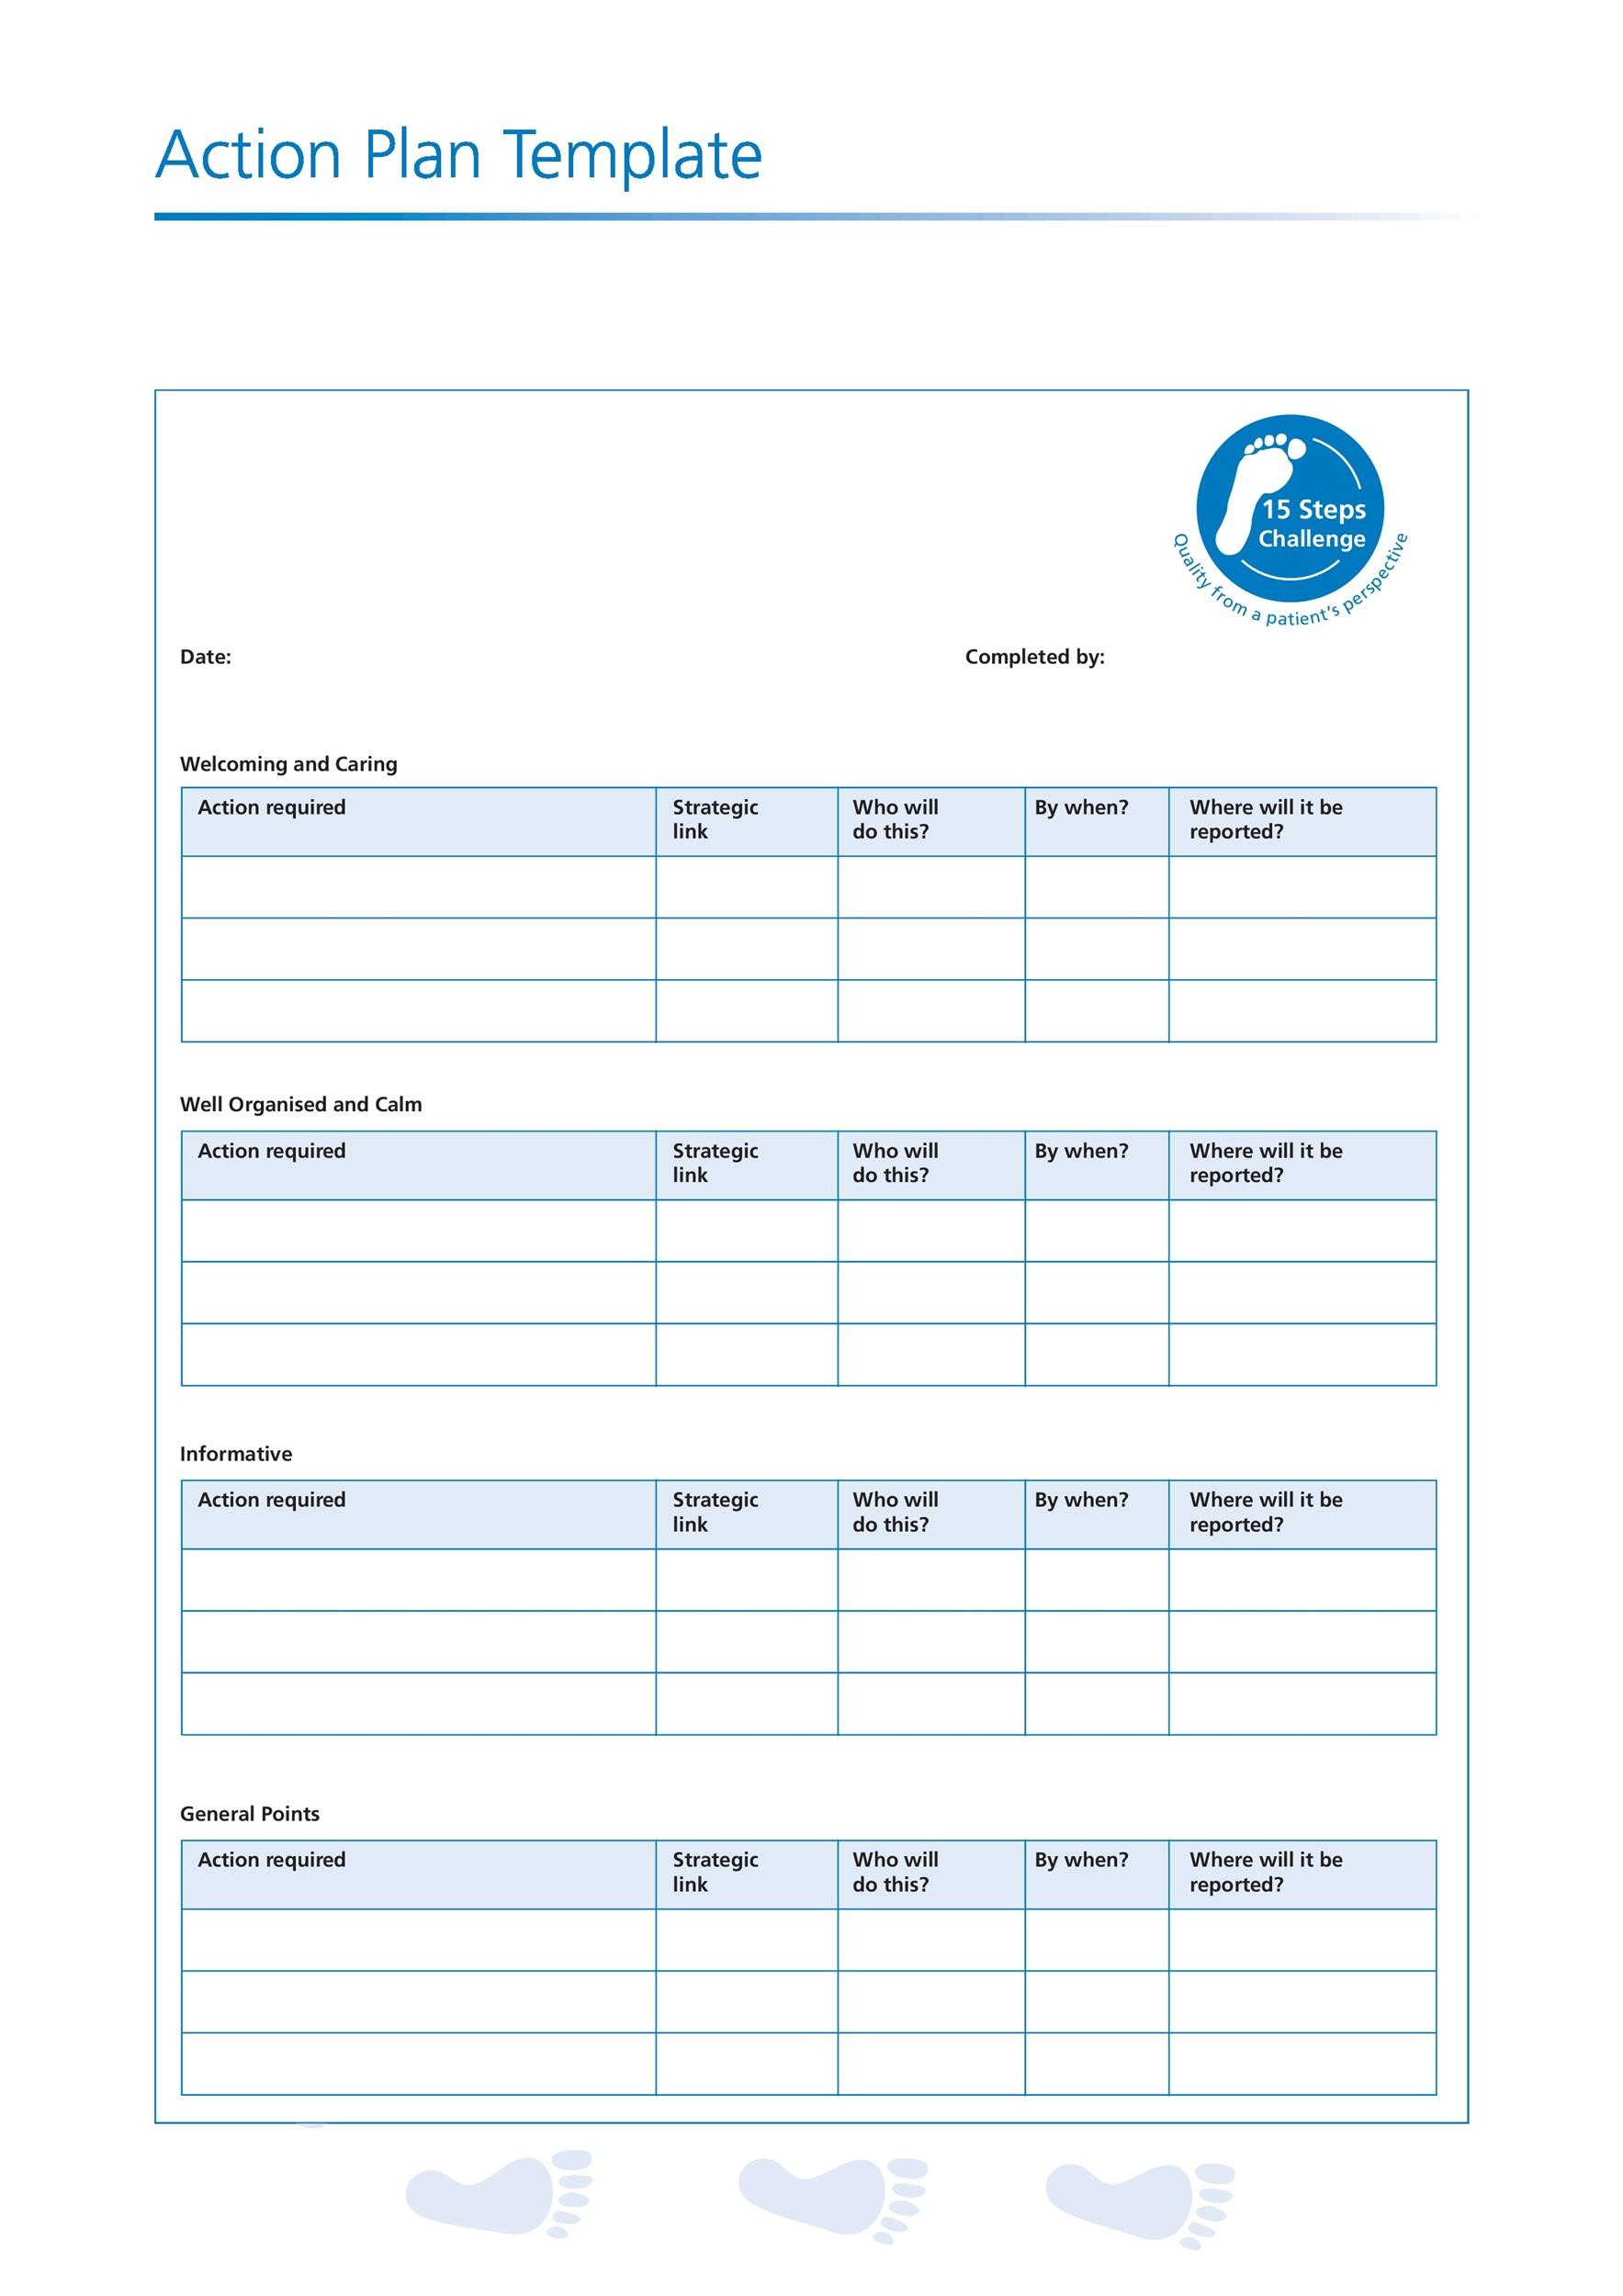 Action Plan Templates  Action Plan Templates Excel